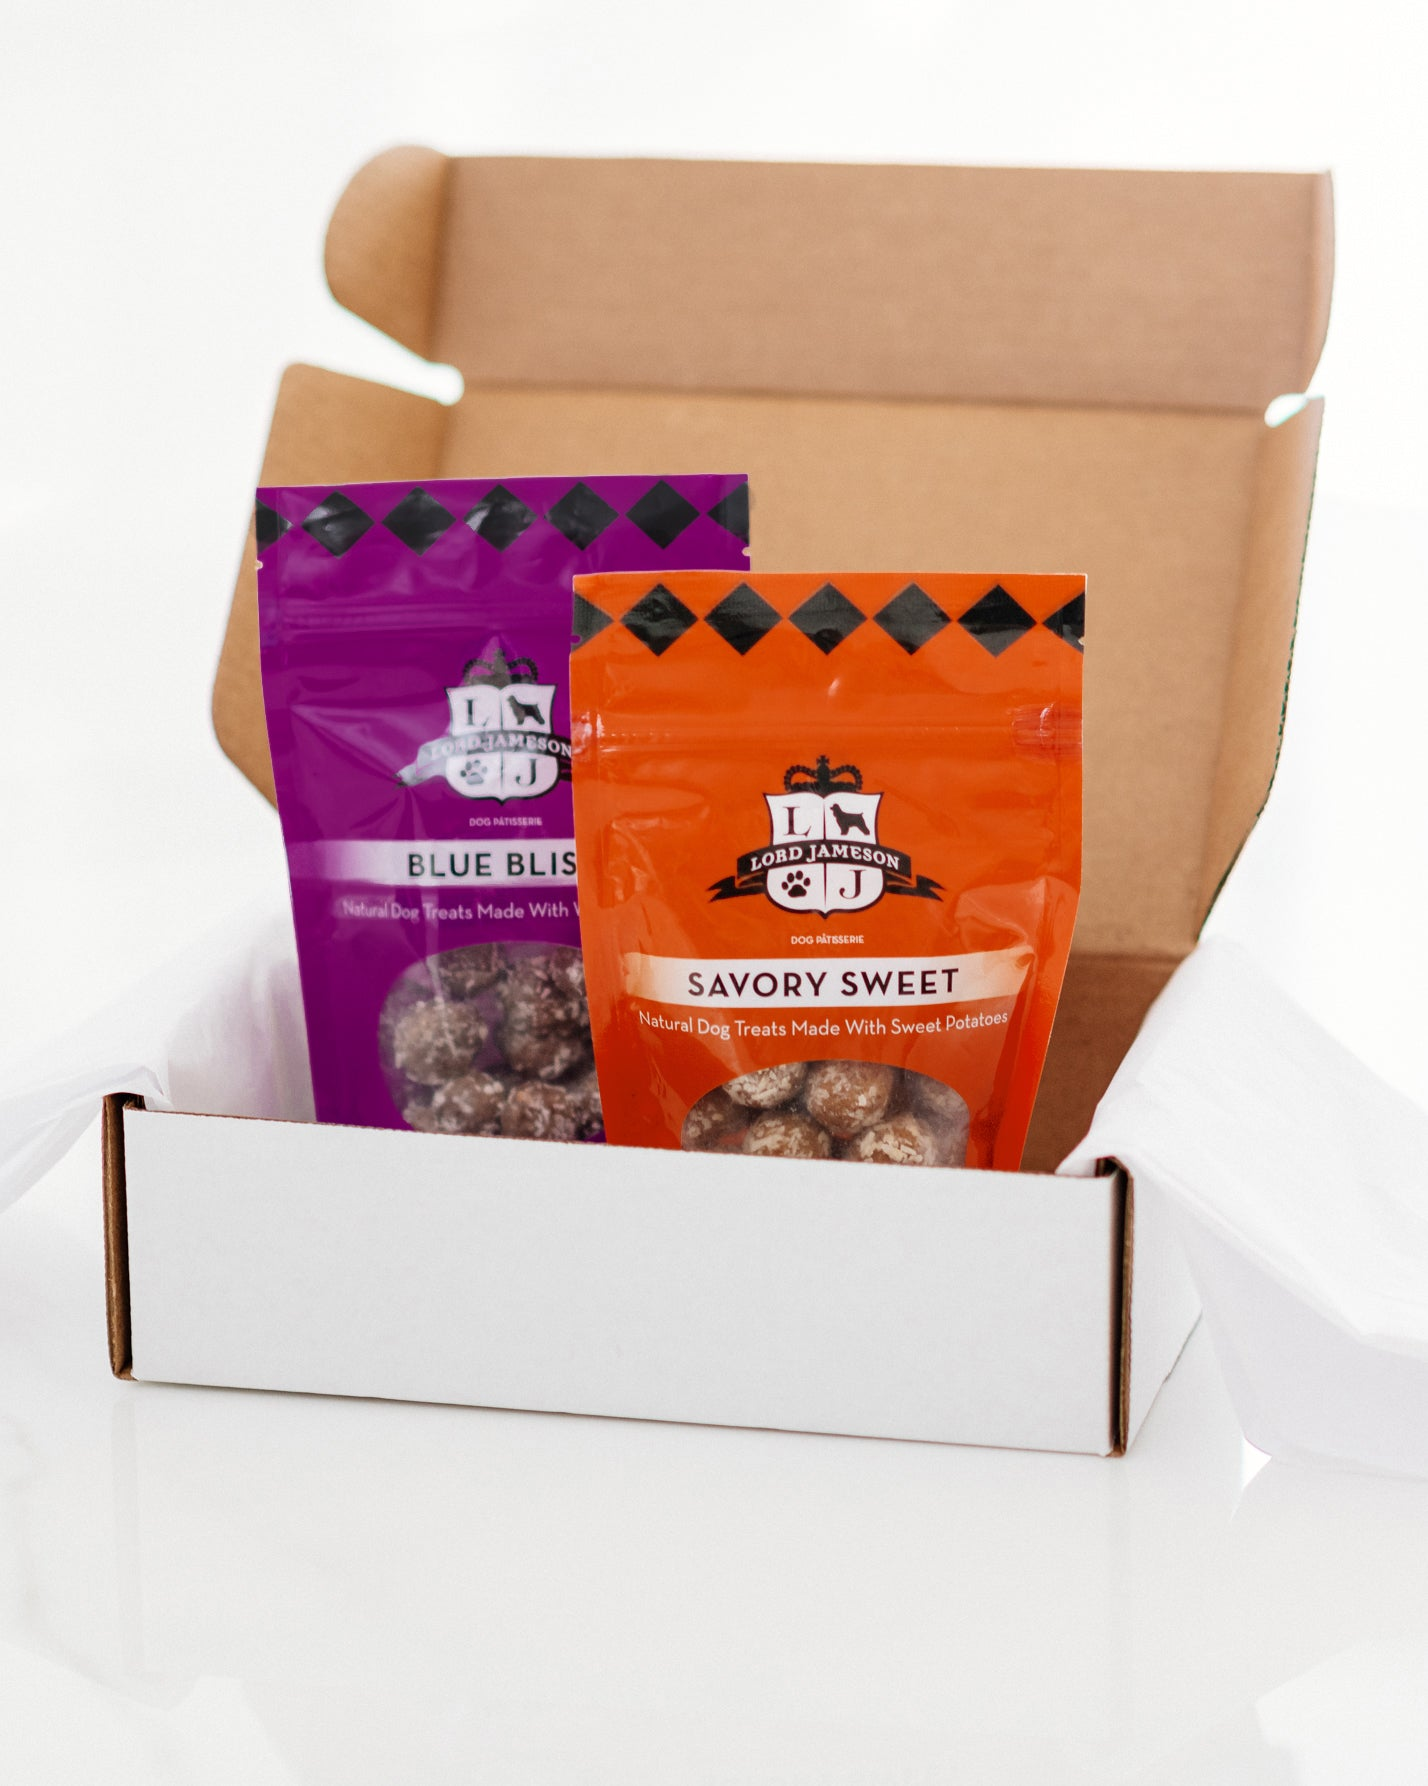 Build An Organic Dog Treat Box | 2-Pack - Lord Jameson Organic Dog Treats